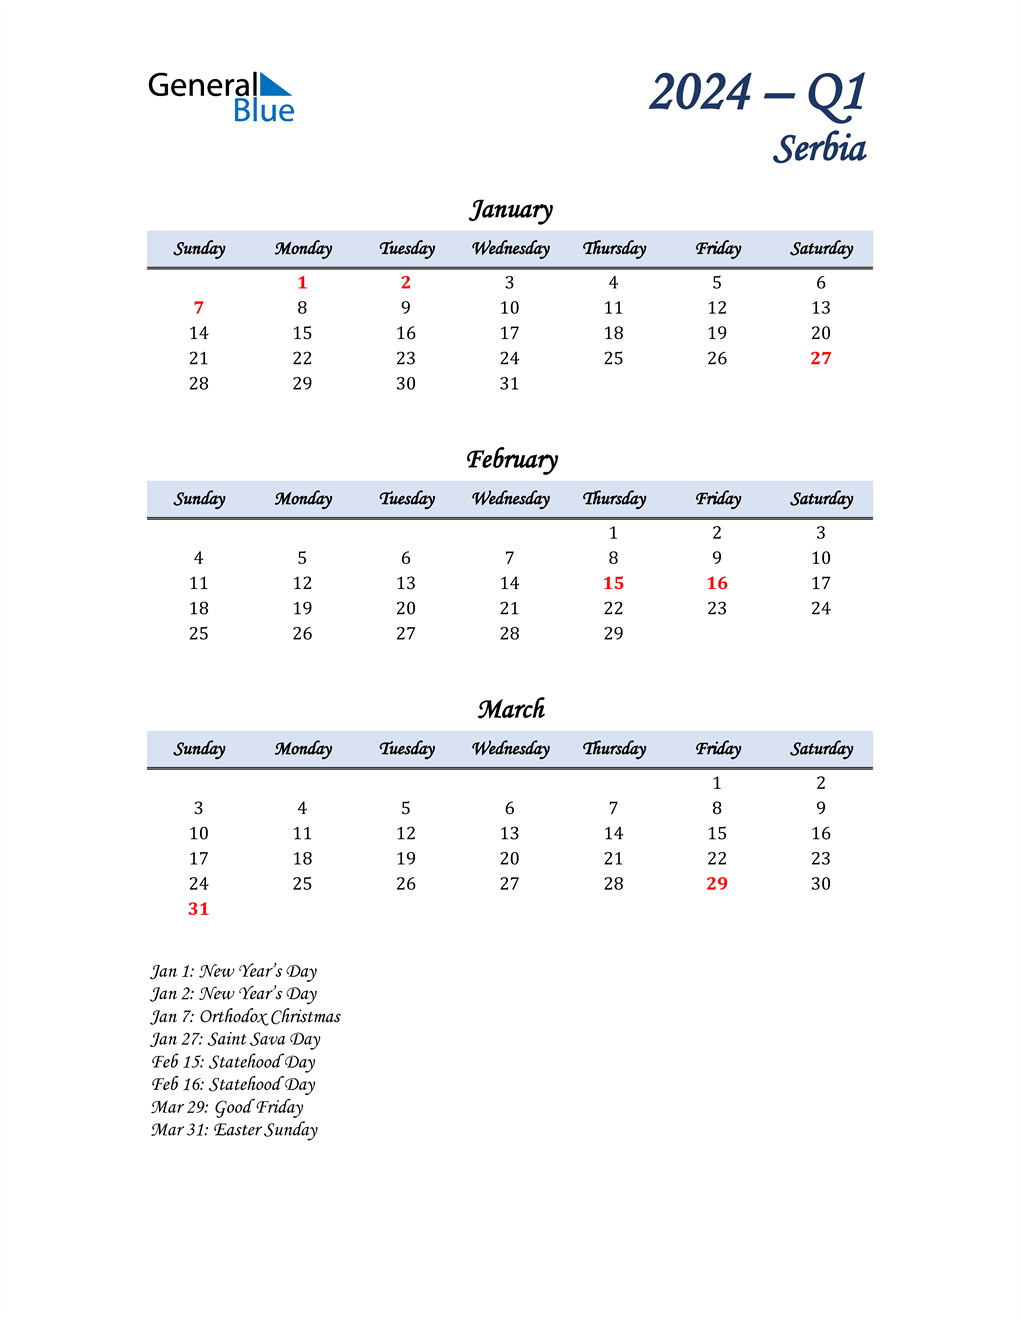 January, February, and March Calendar for Serbia